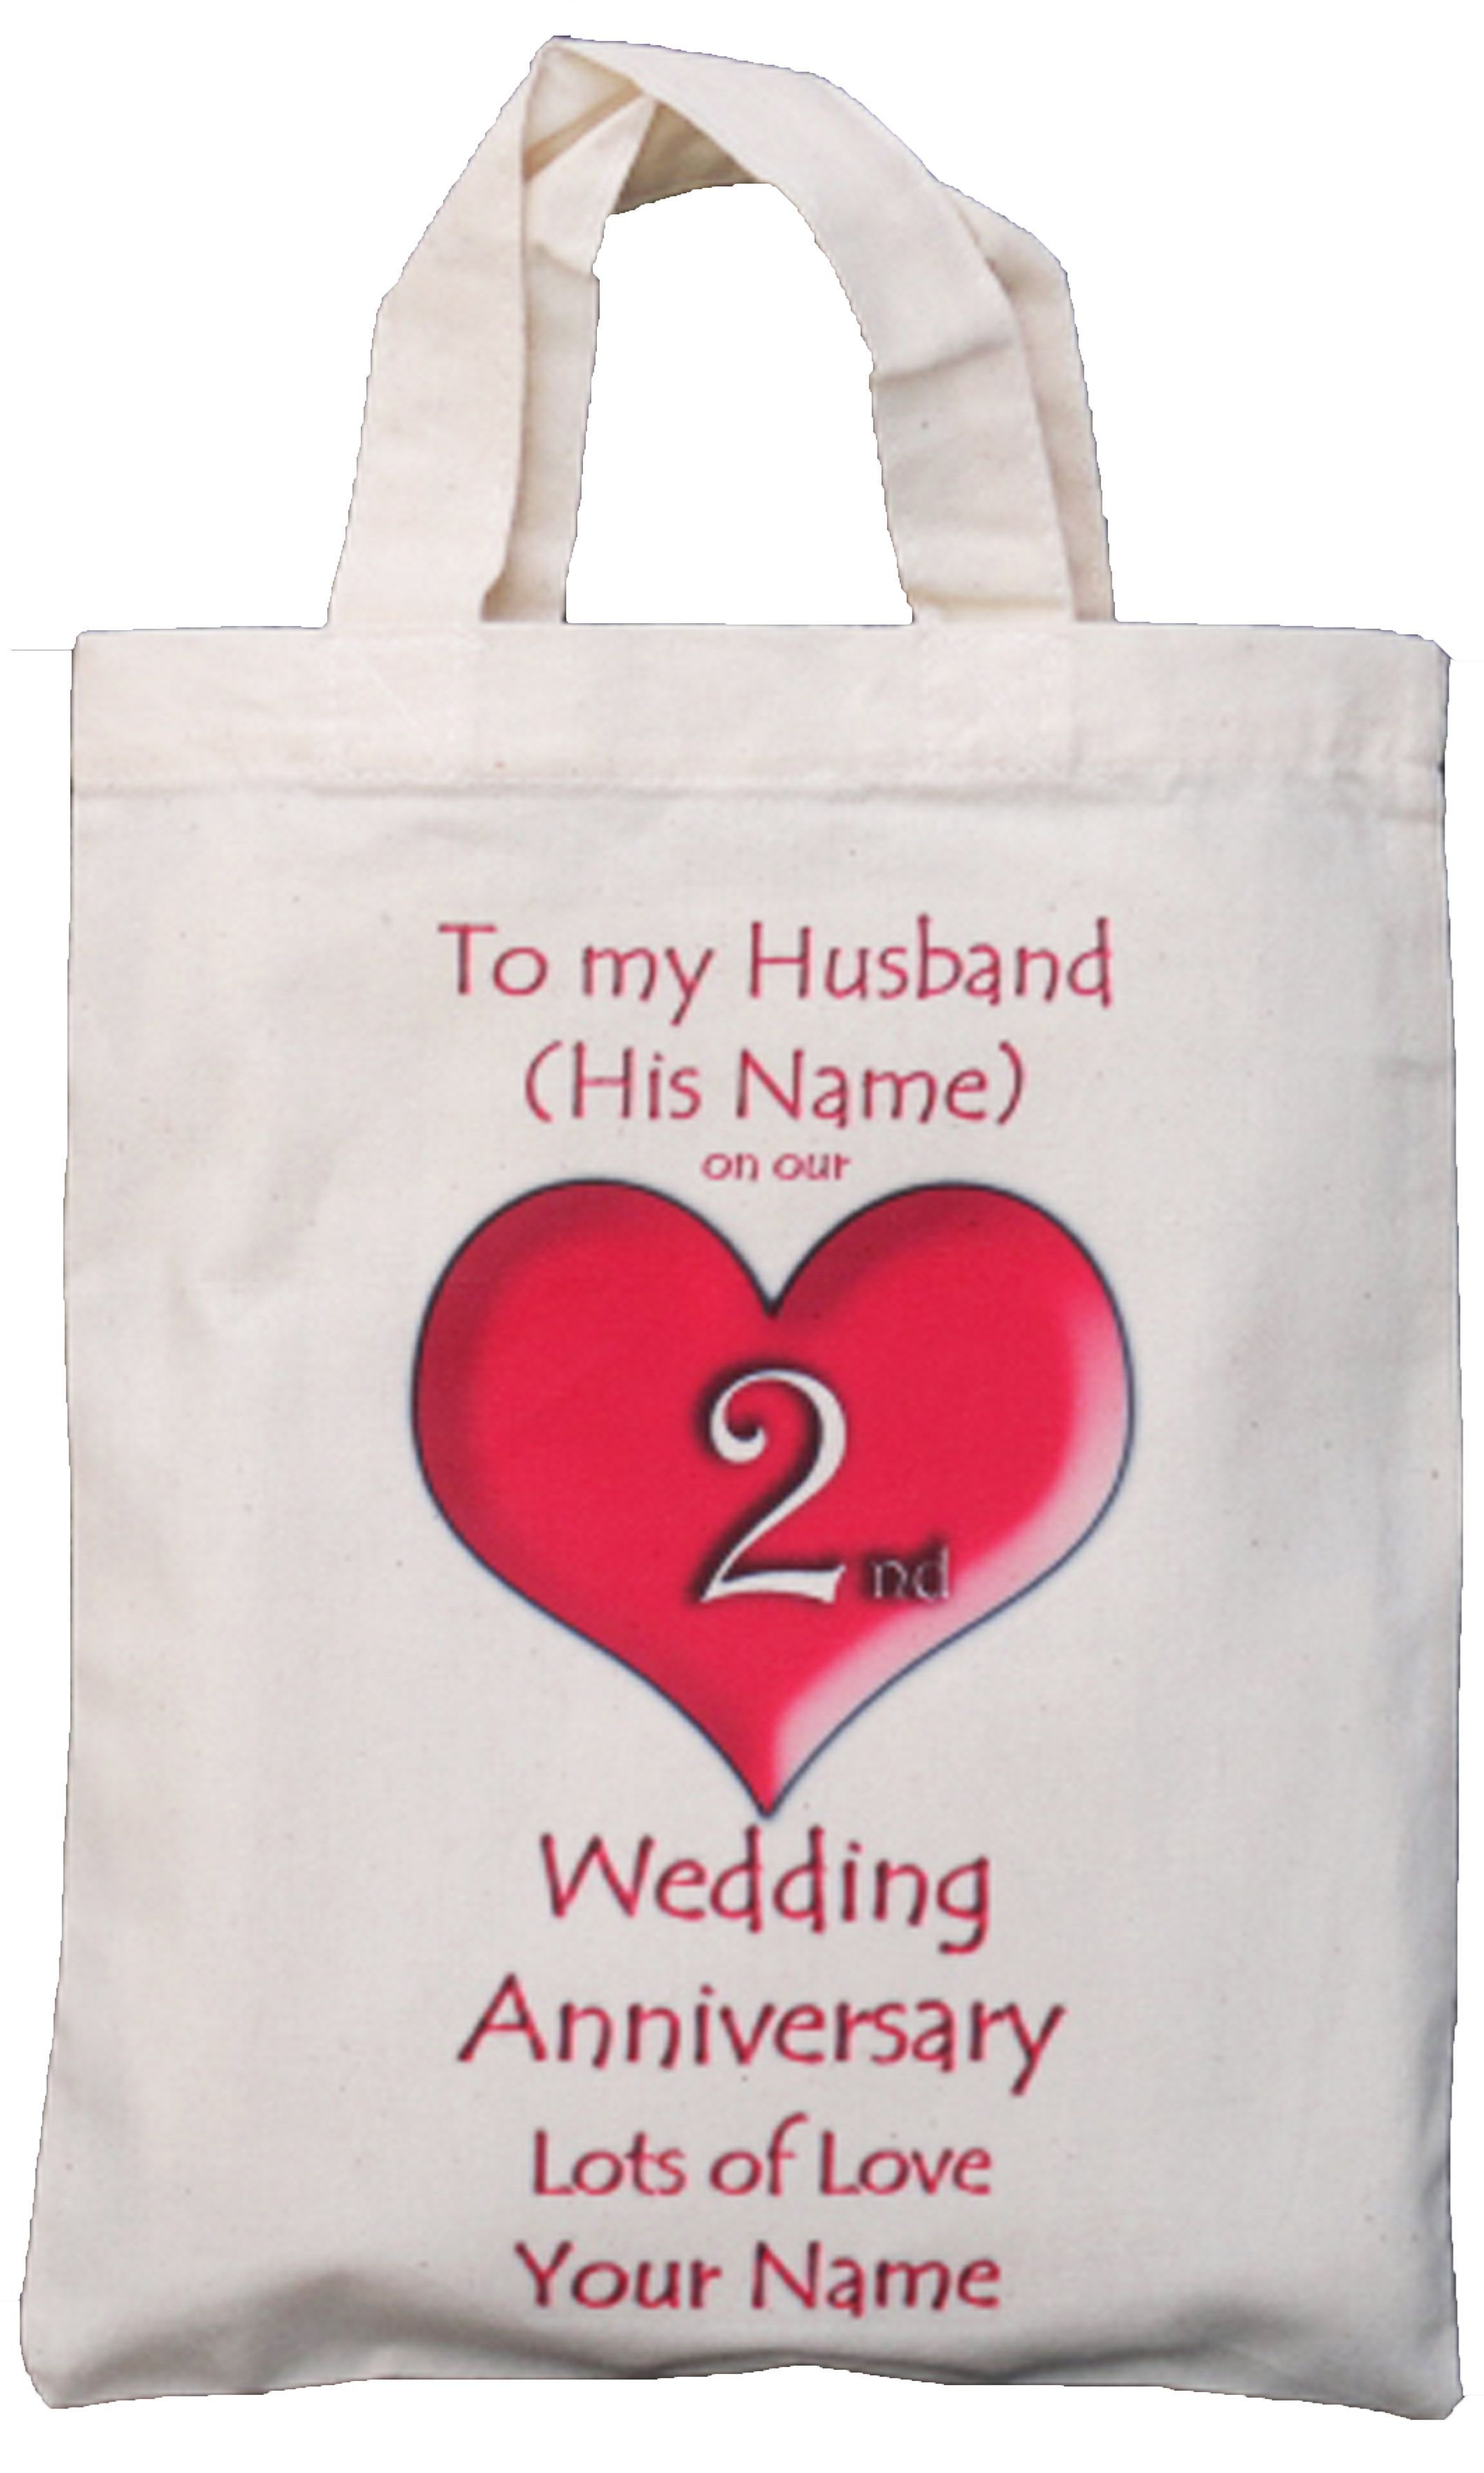 Best Of Cotton Wedding Anniversary Gift Ideas Uk And View